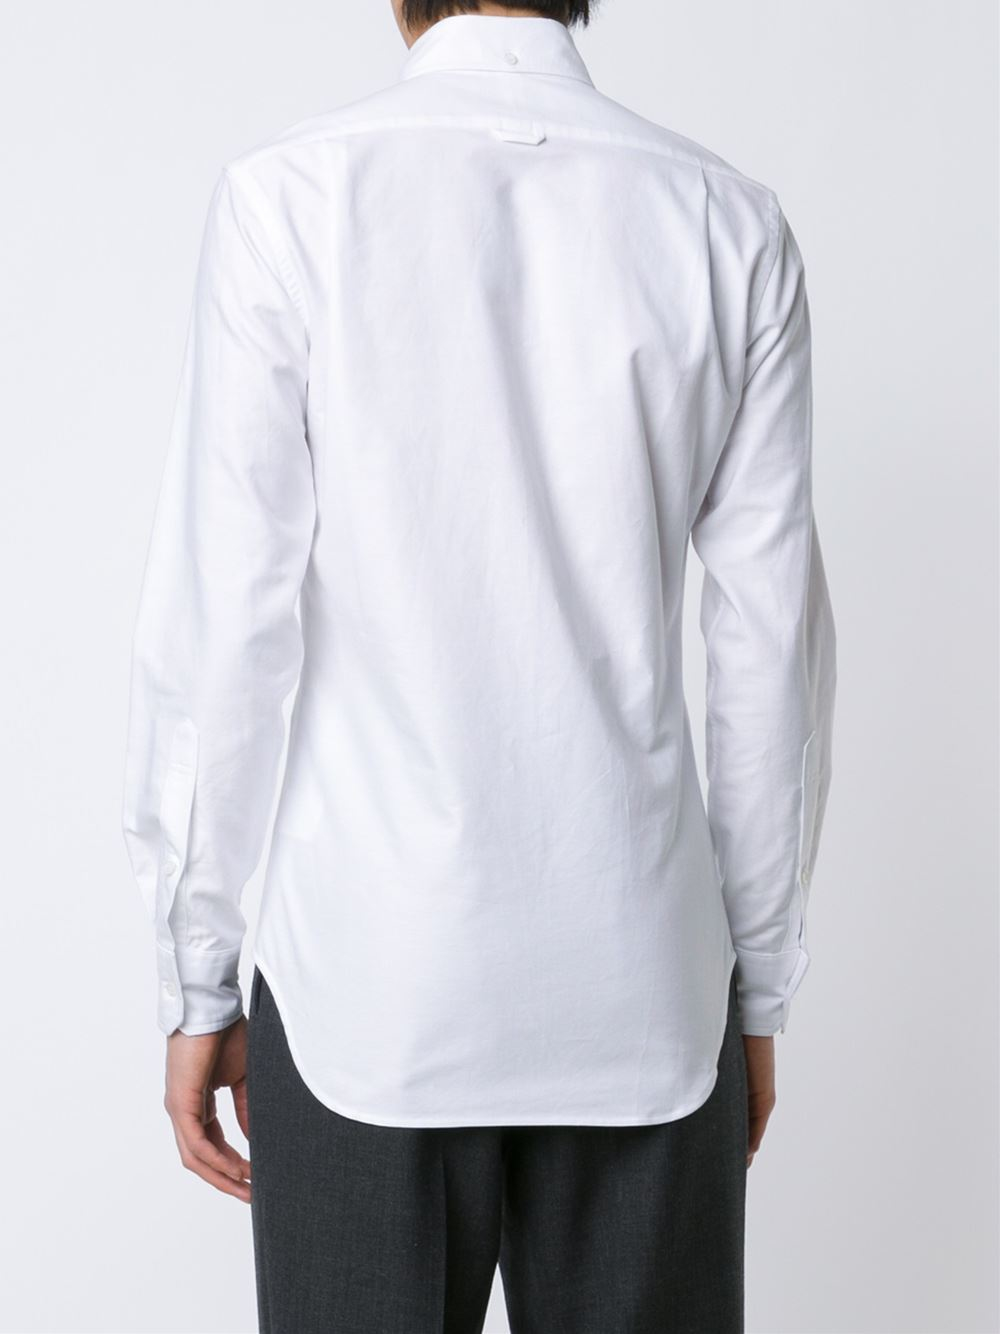 Thom browne button down embroidered shirt in white for men